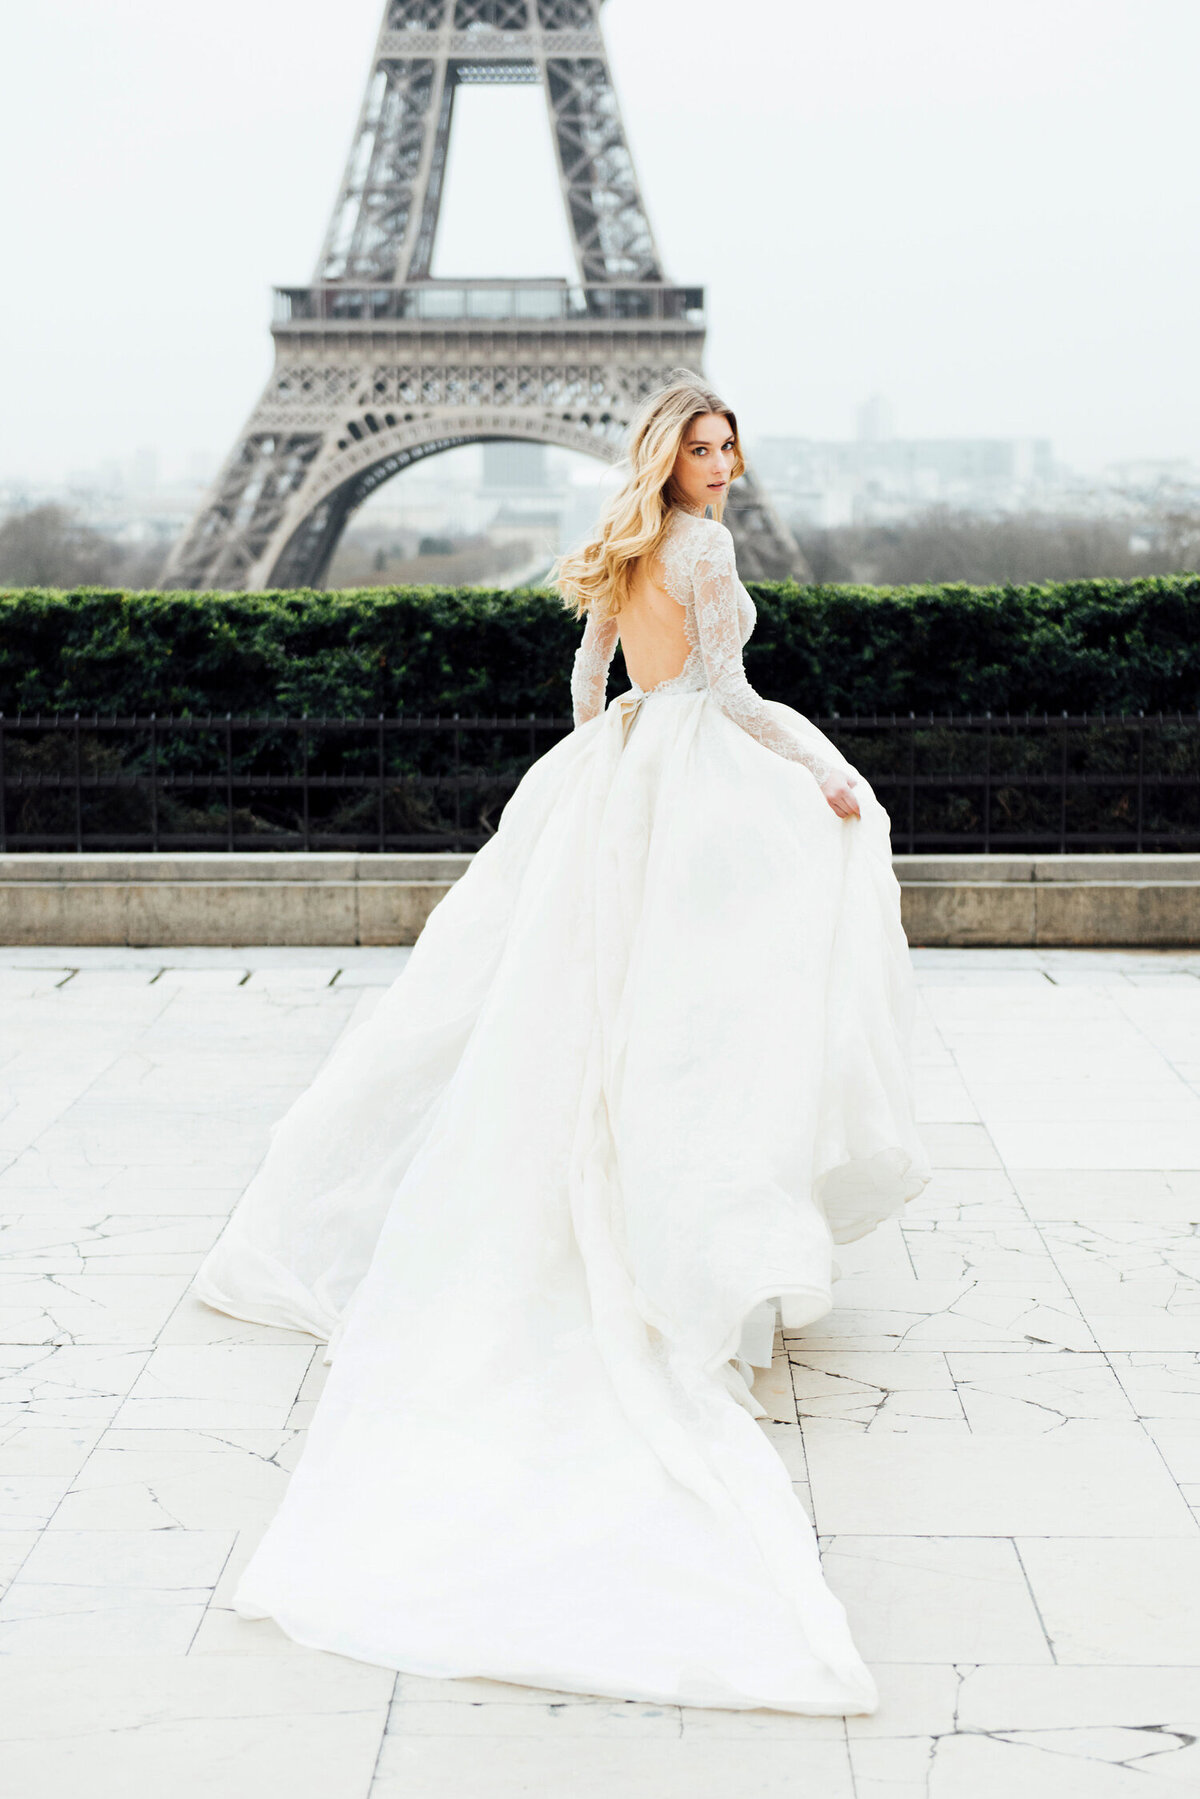 Katie Mitchell, Monique Lhuillier Bridal Paris France Wedding Trine Juel Hair and makeup 2